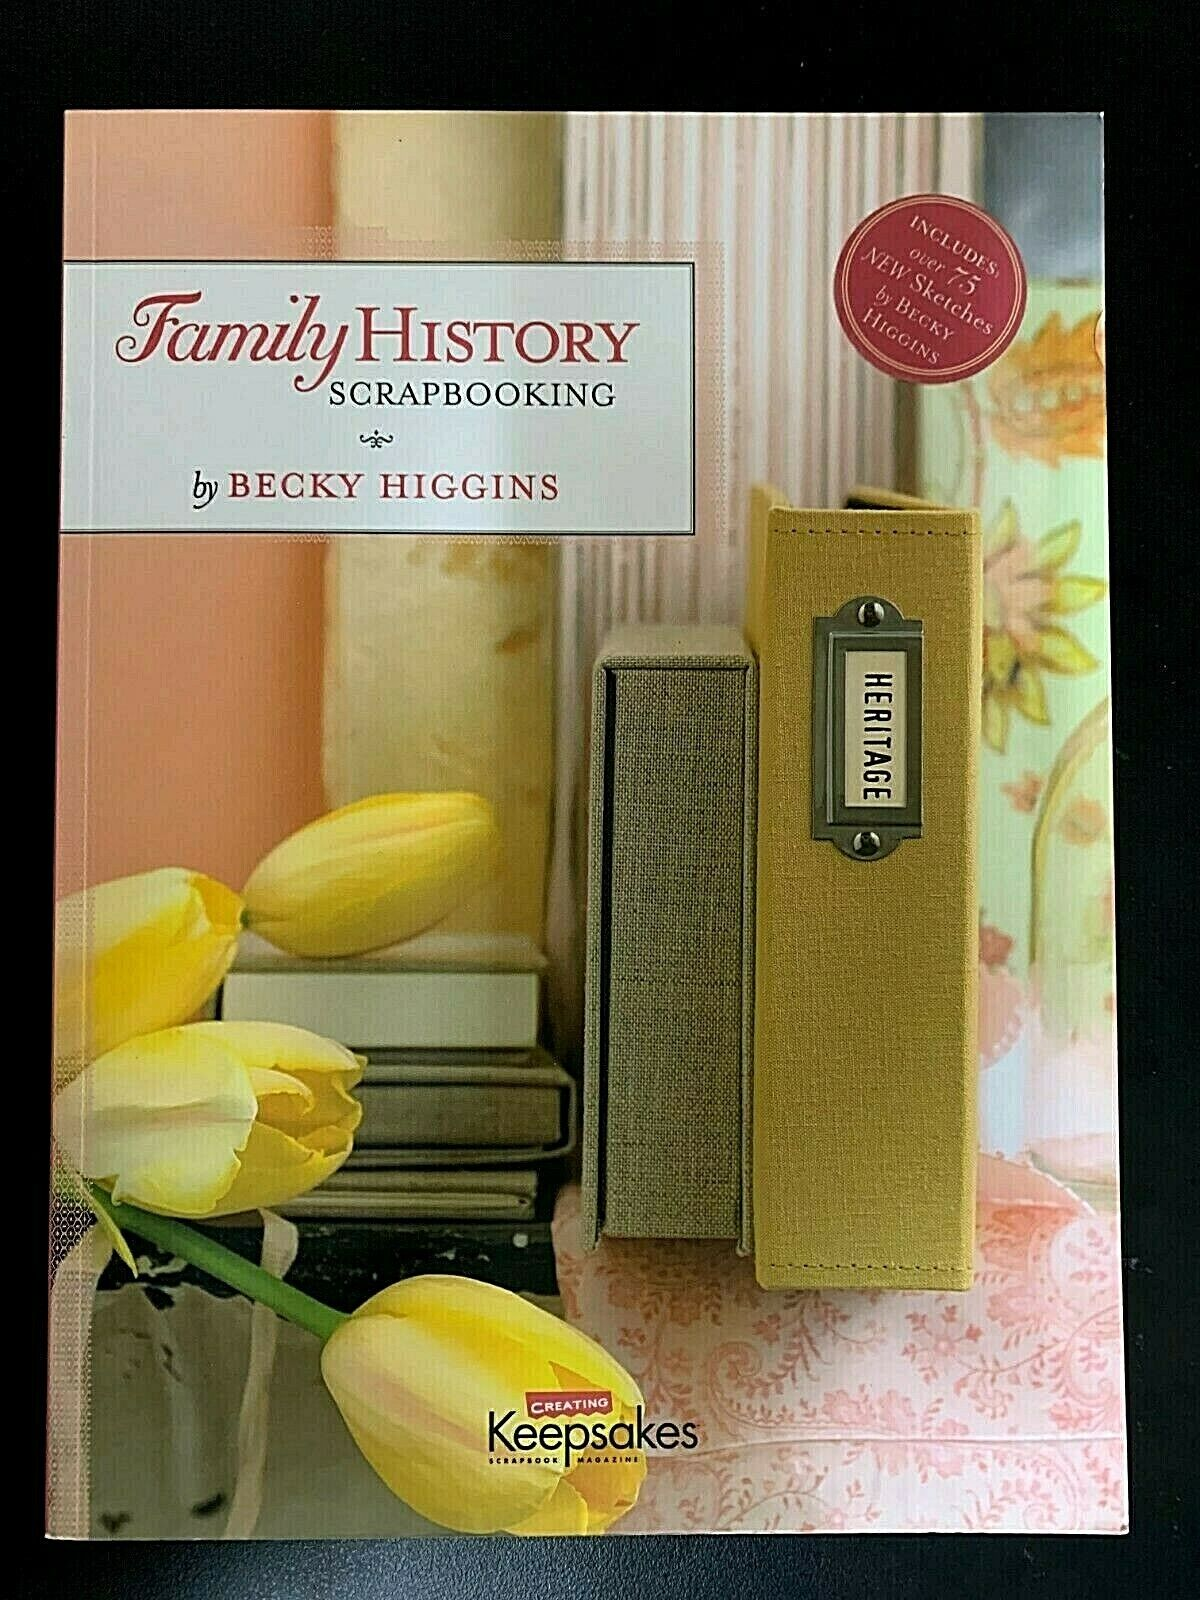 Creating Keepsakes Family History Scrapbooking By Becky Higgins - $9.00